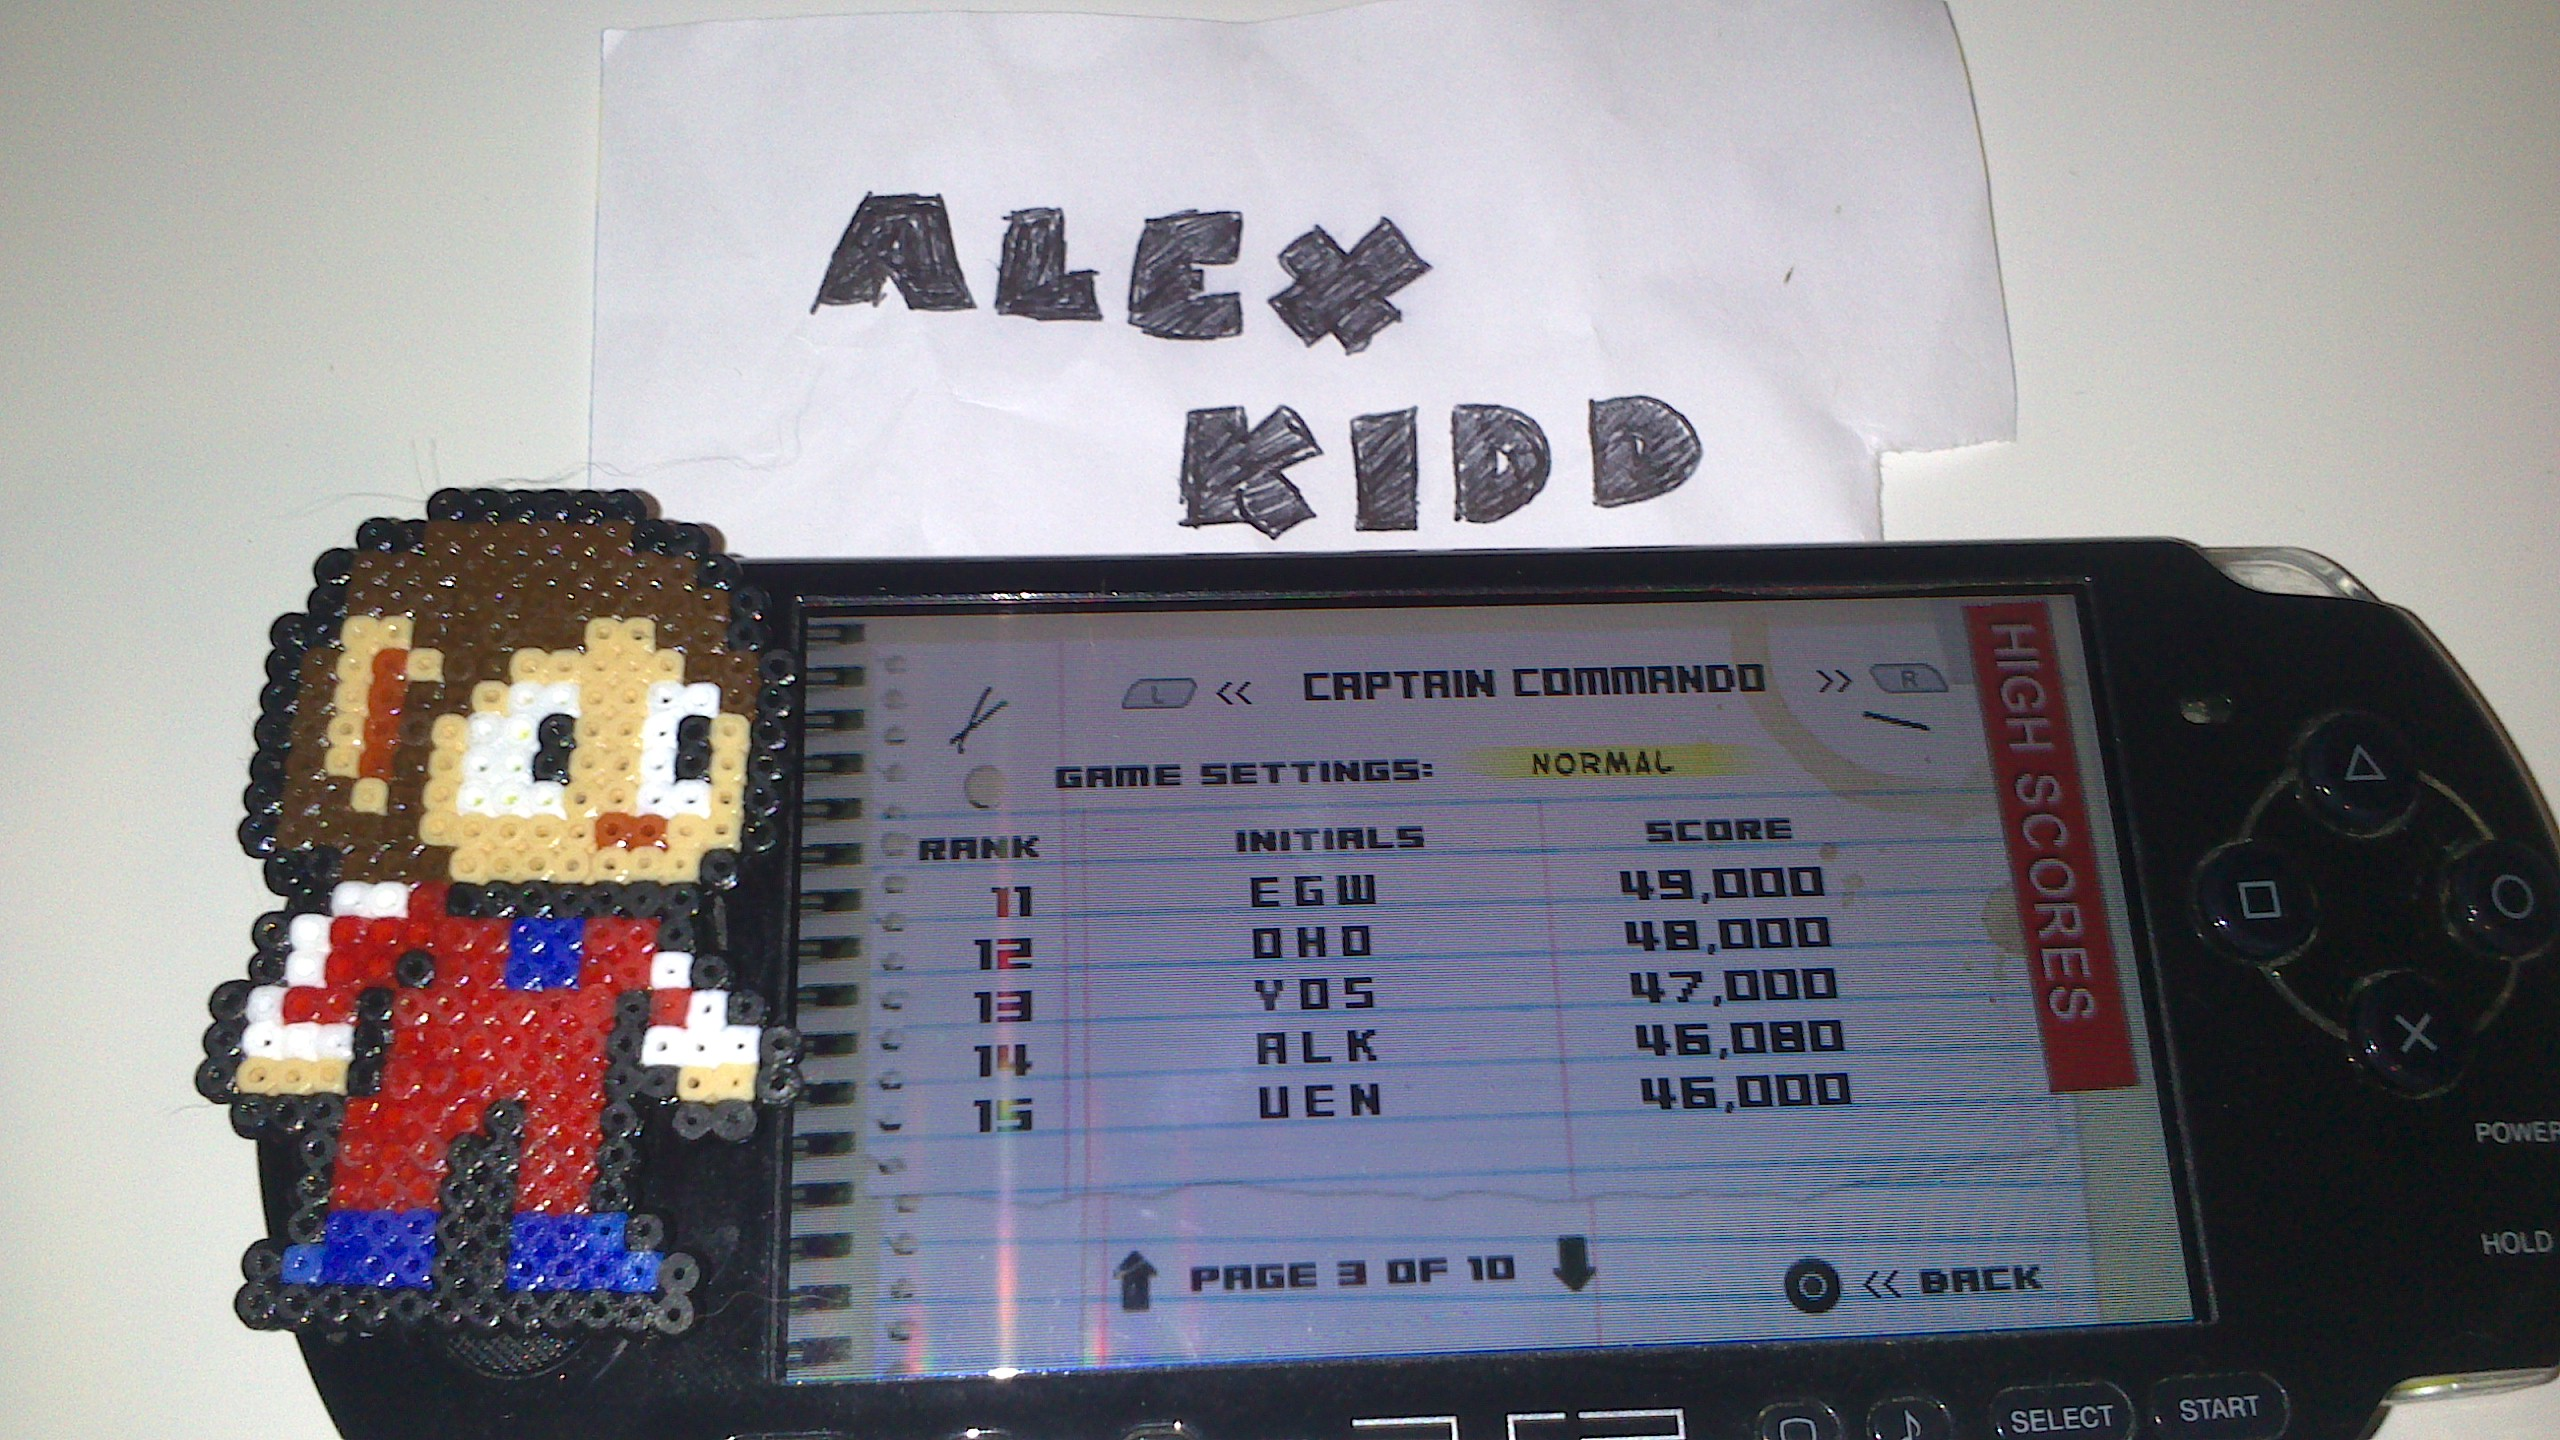 AlexKidd: Capcom Classics Collection Remixed: Captain Commando [Normal] (PSP) 46,080 points on 2014-08-27 18:13:21